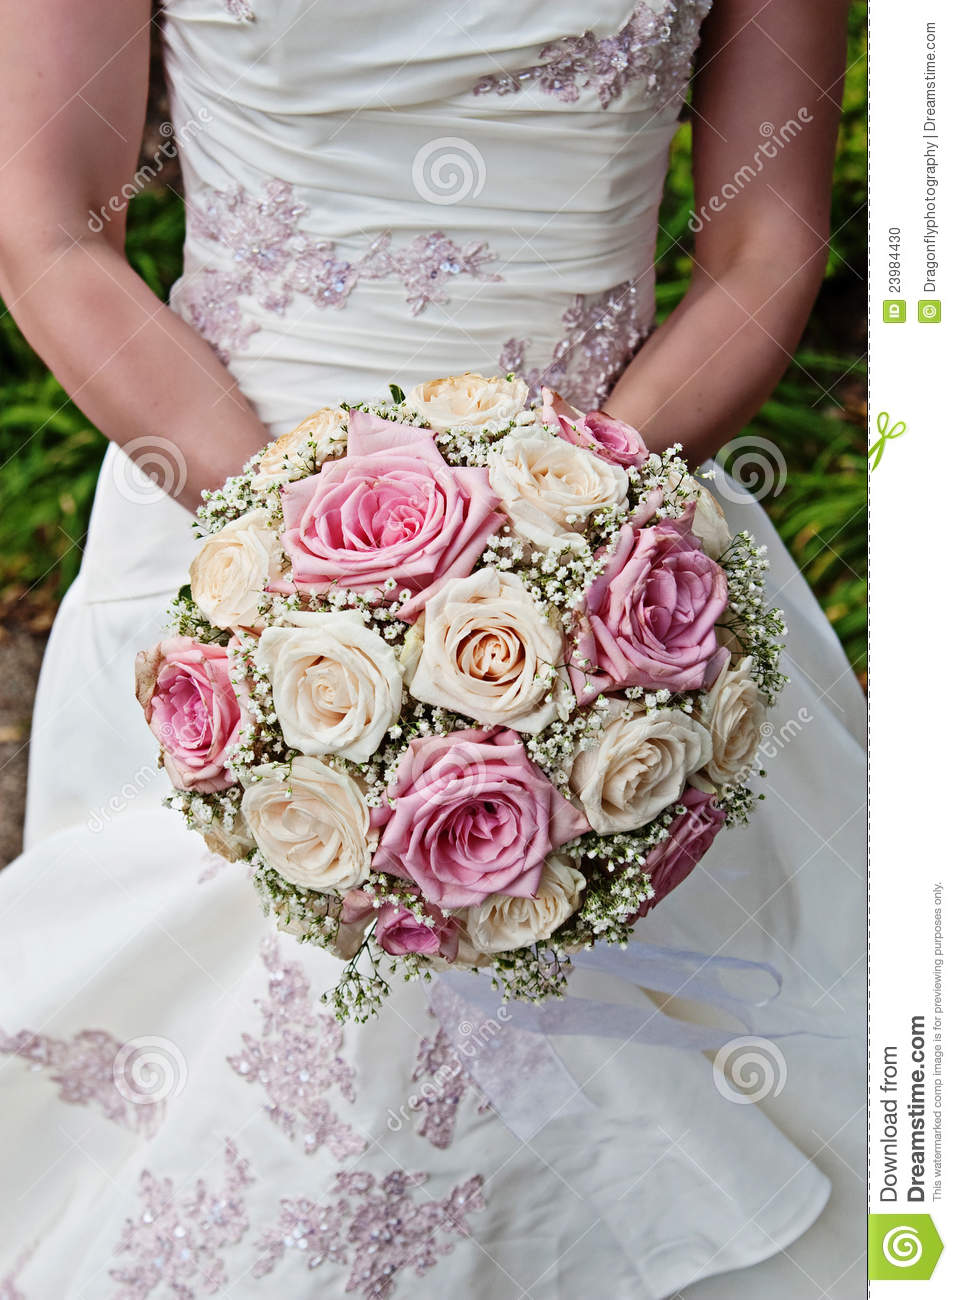 Pink And White Rose Bridal Bouquet Stock Photo - Image of greenery ...